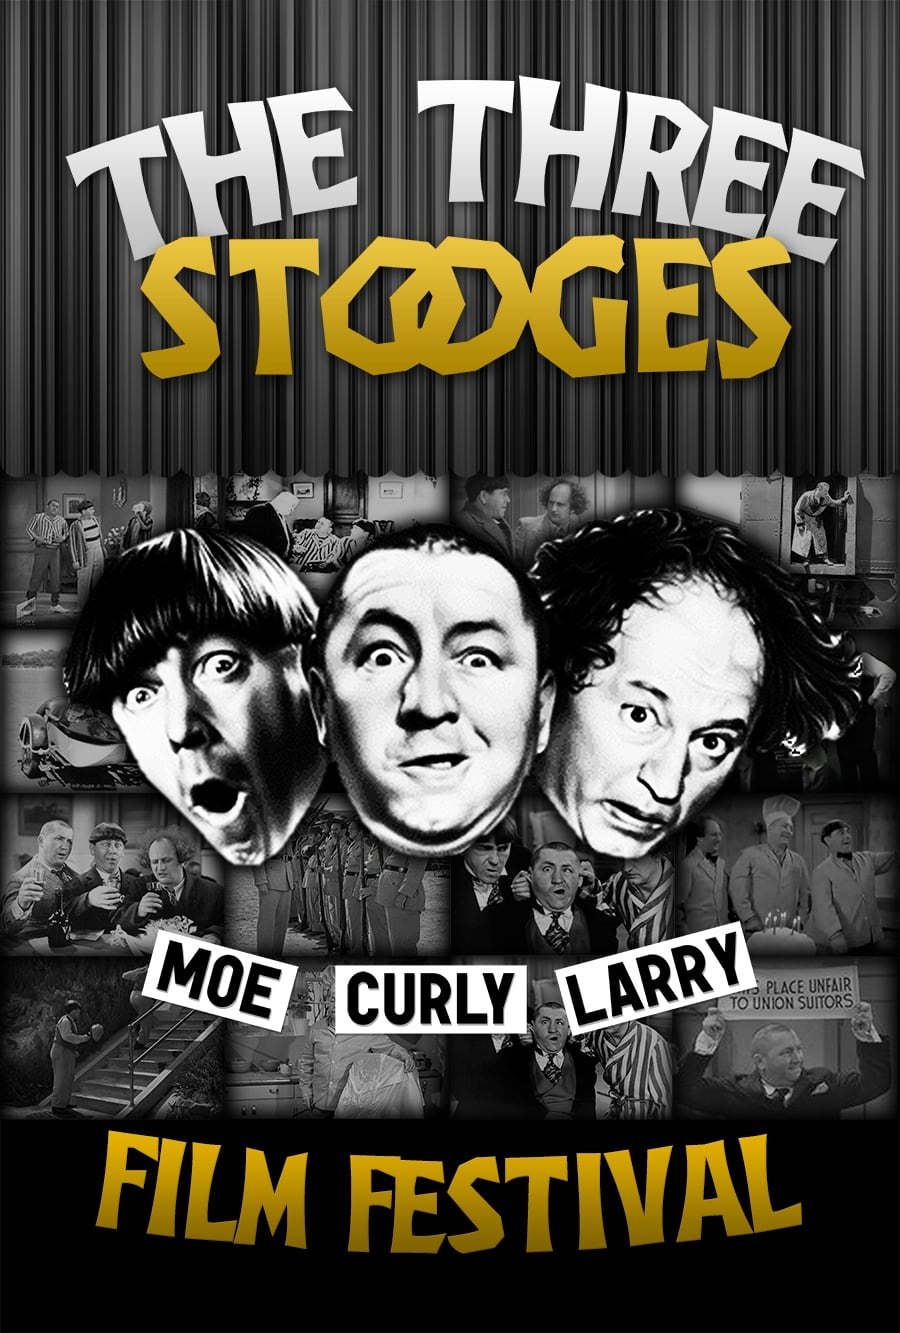 The Three Stooges Film Festival